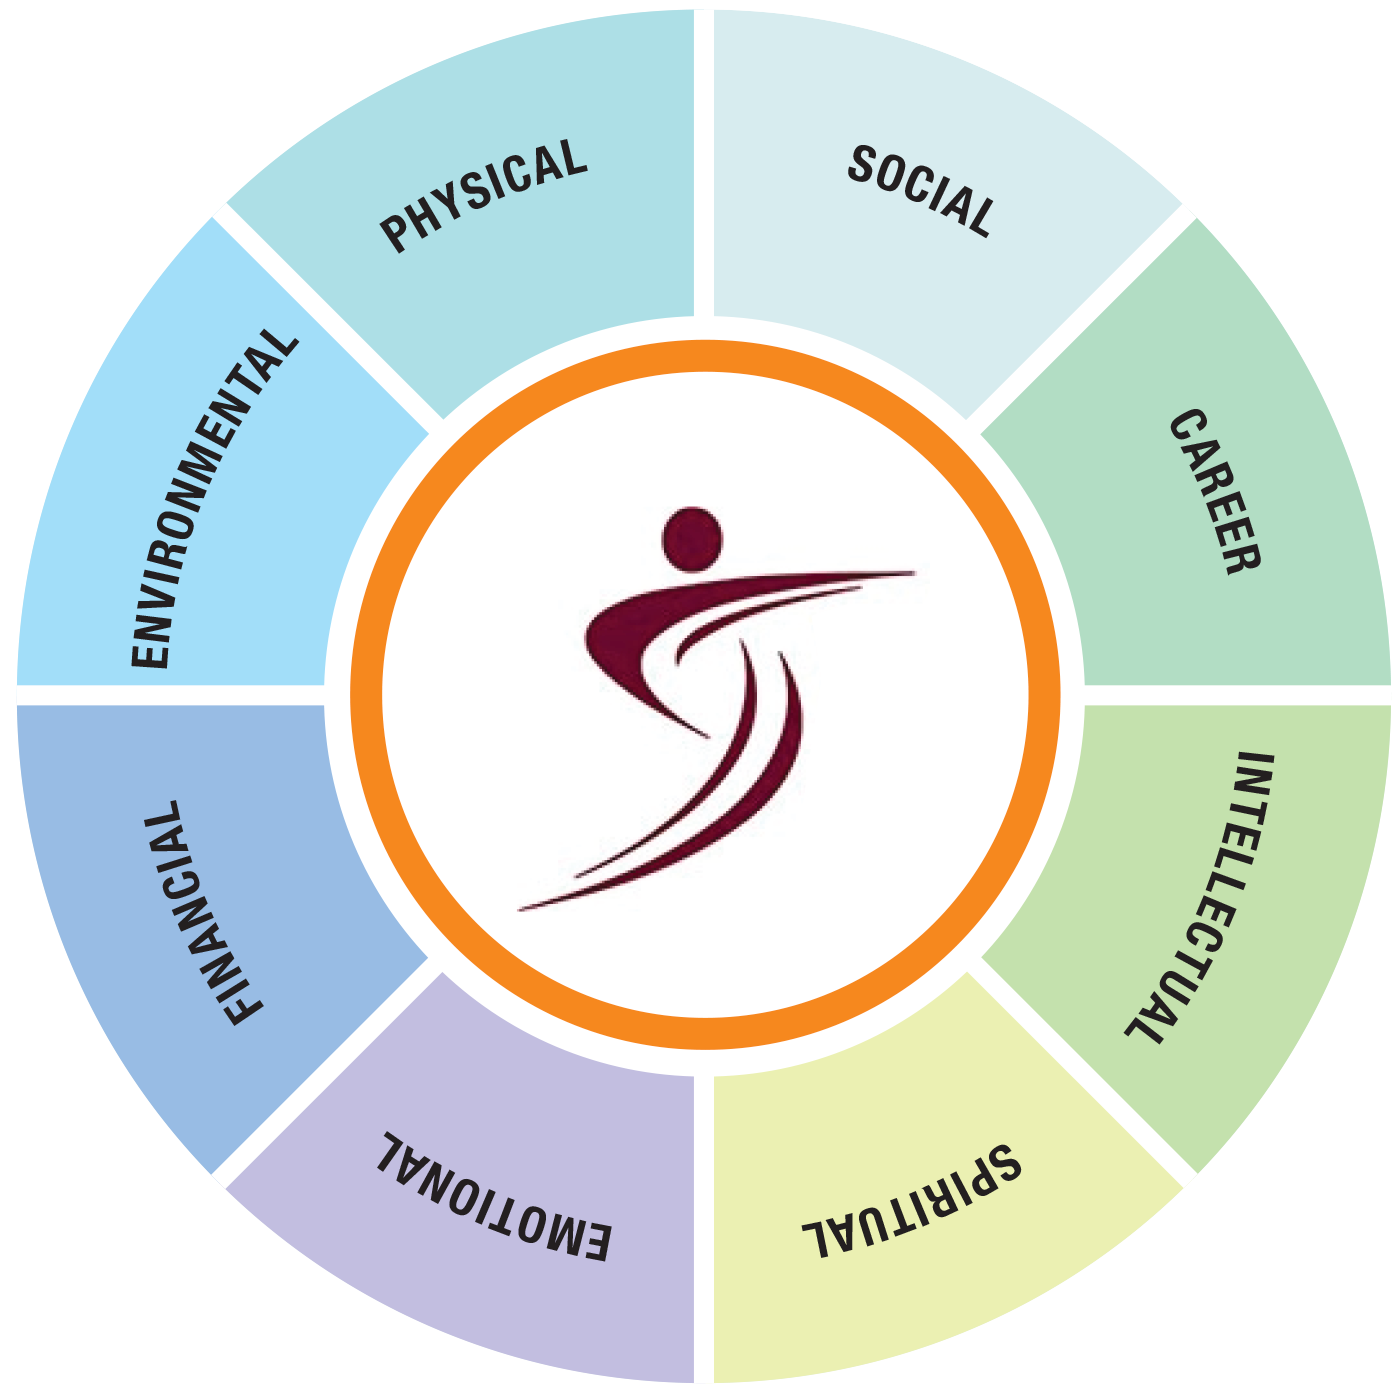 Dimensions of Wellness Wheel